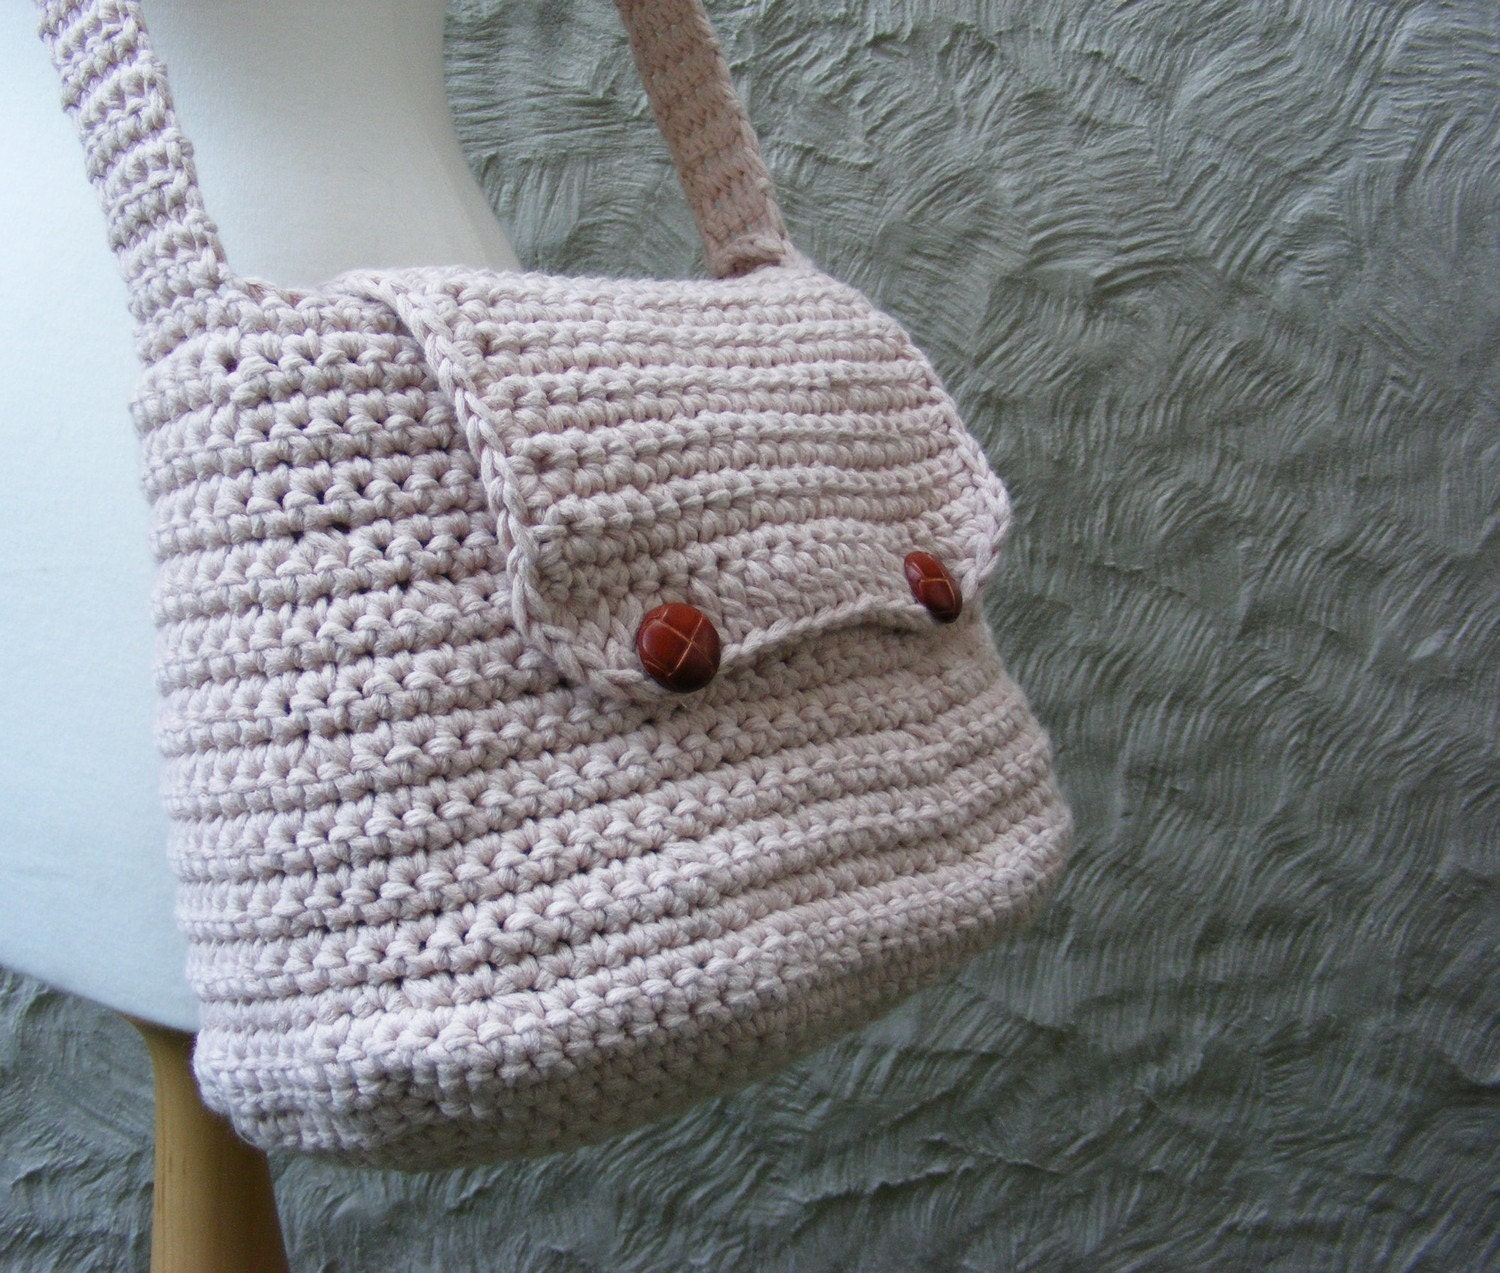 New Crochet Bags : Messenger Bag Crochet Pattern / Tutorial by TheHappyCrocheter